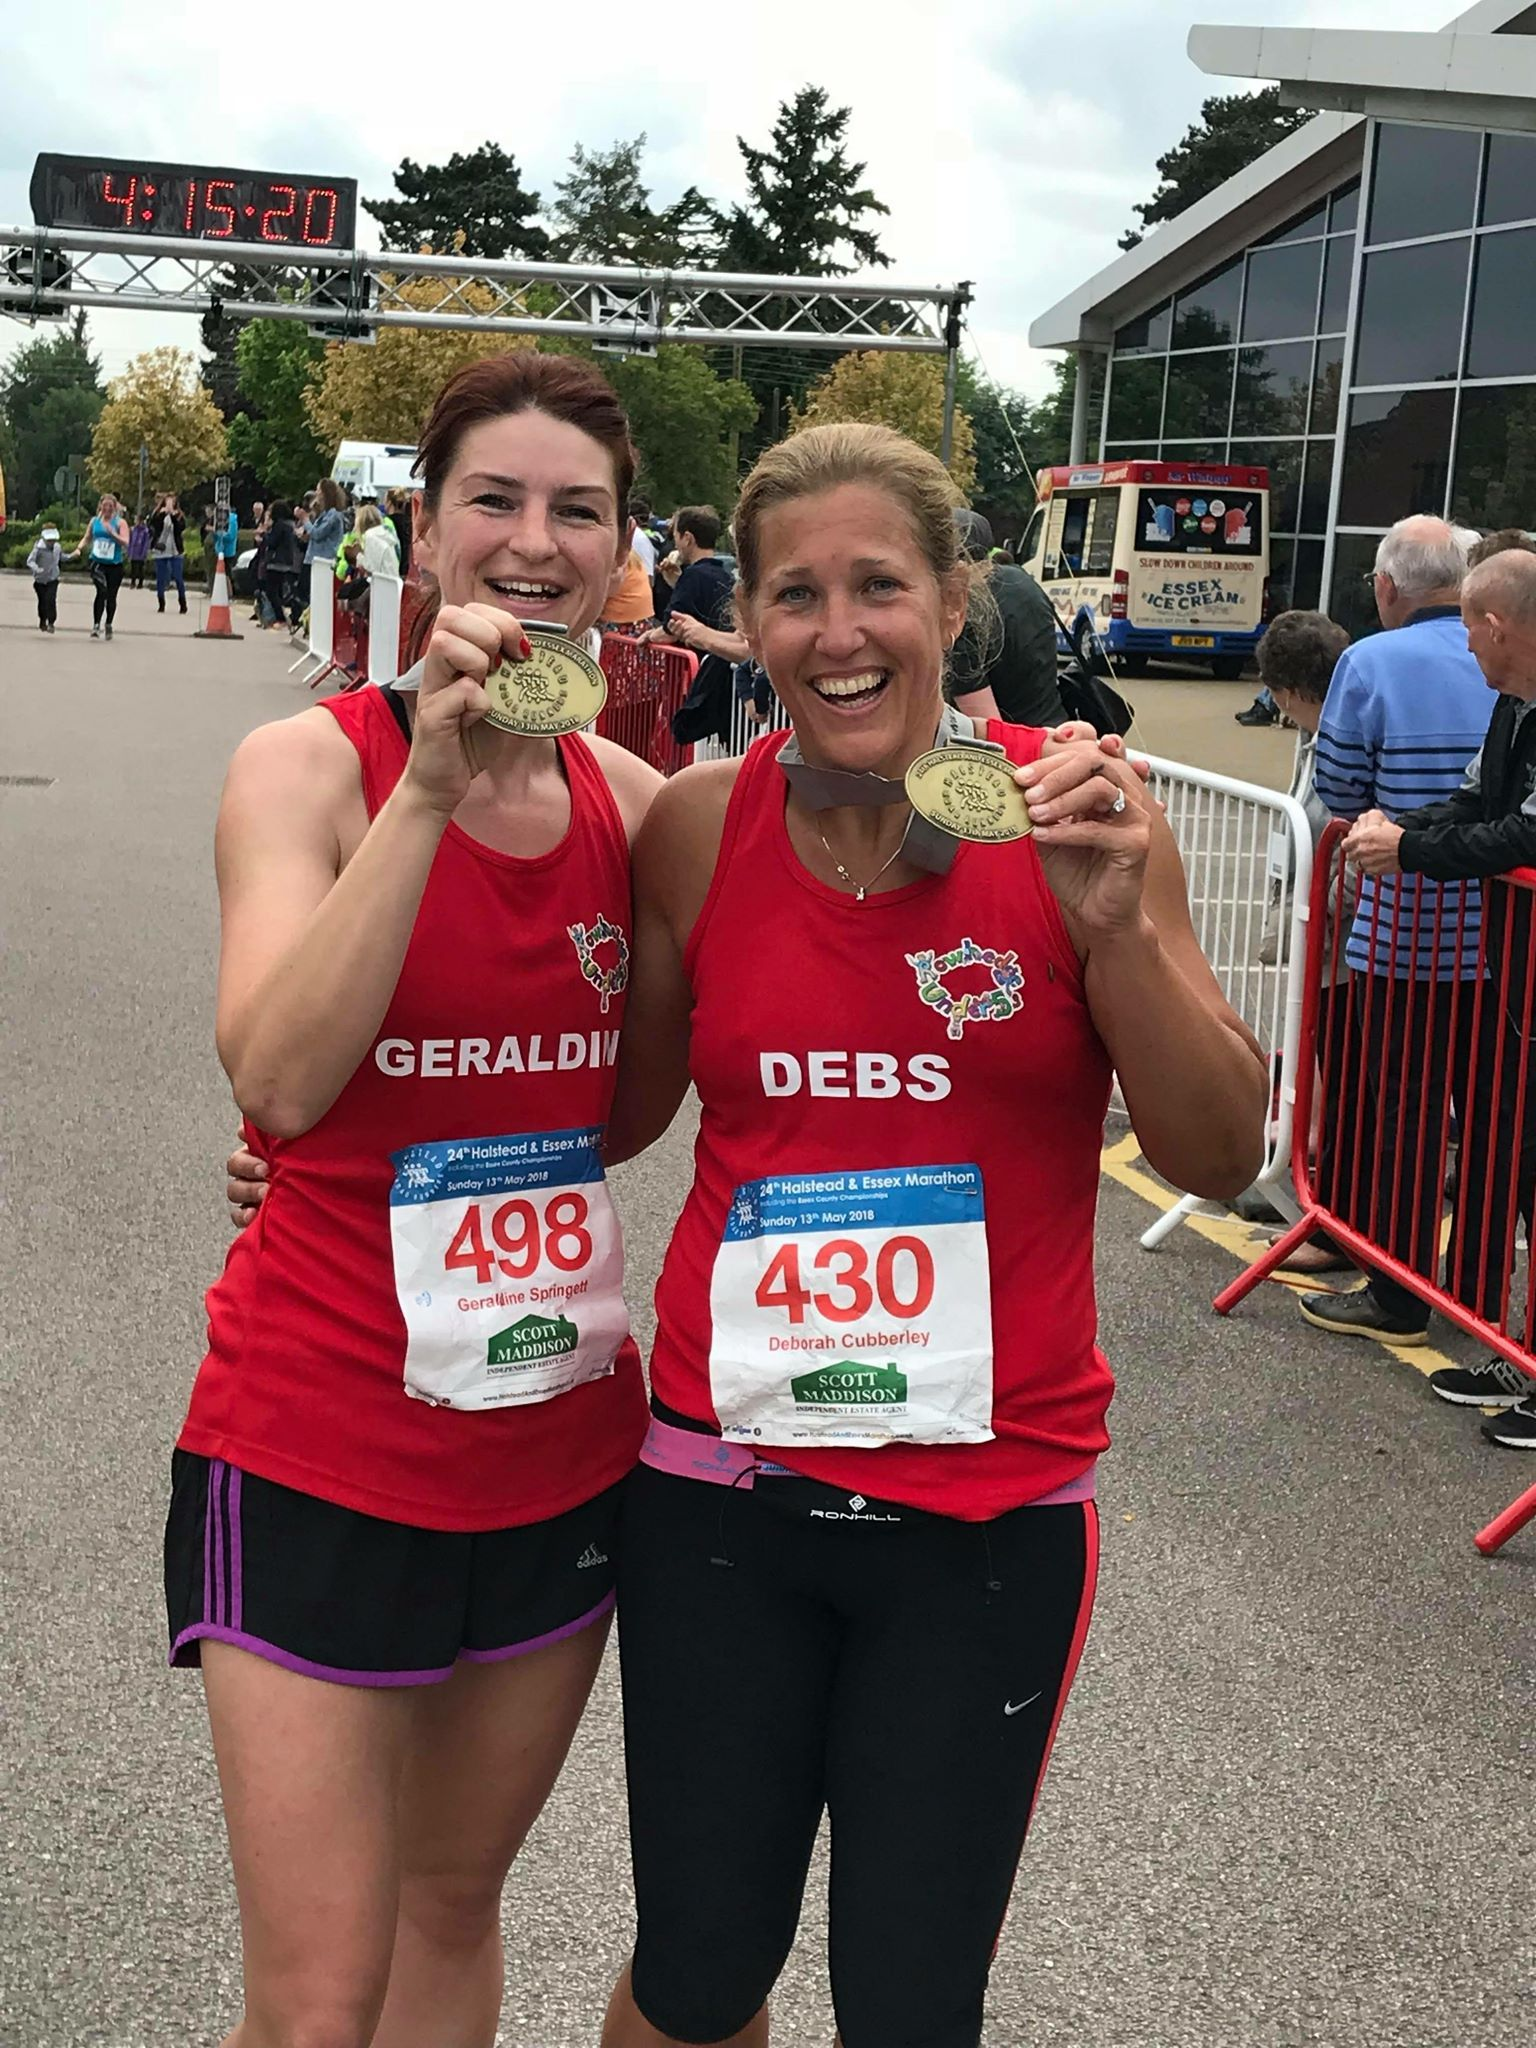 Finished - Geraldine Springett and Debs Cuberley after the Halstead Marathon